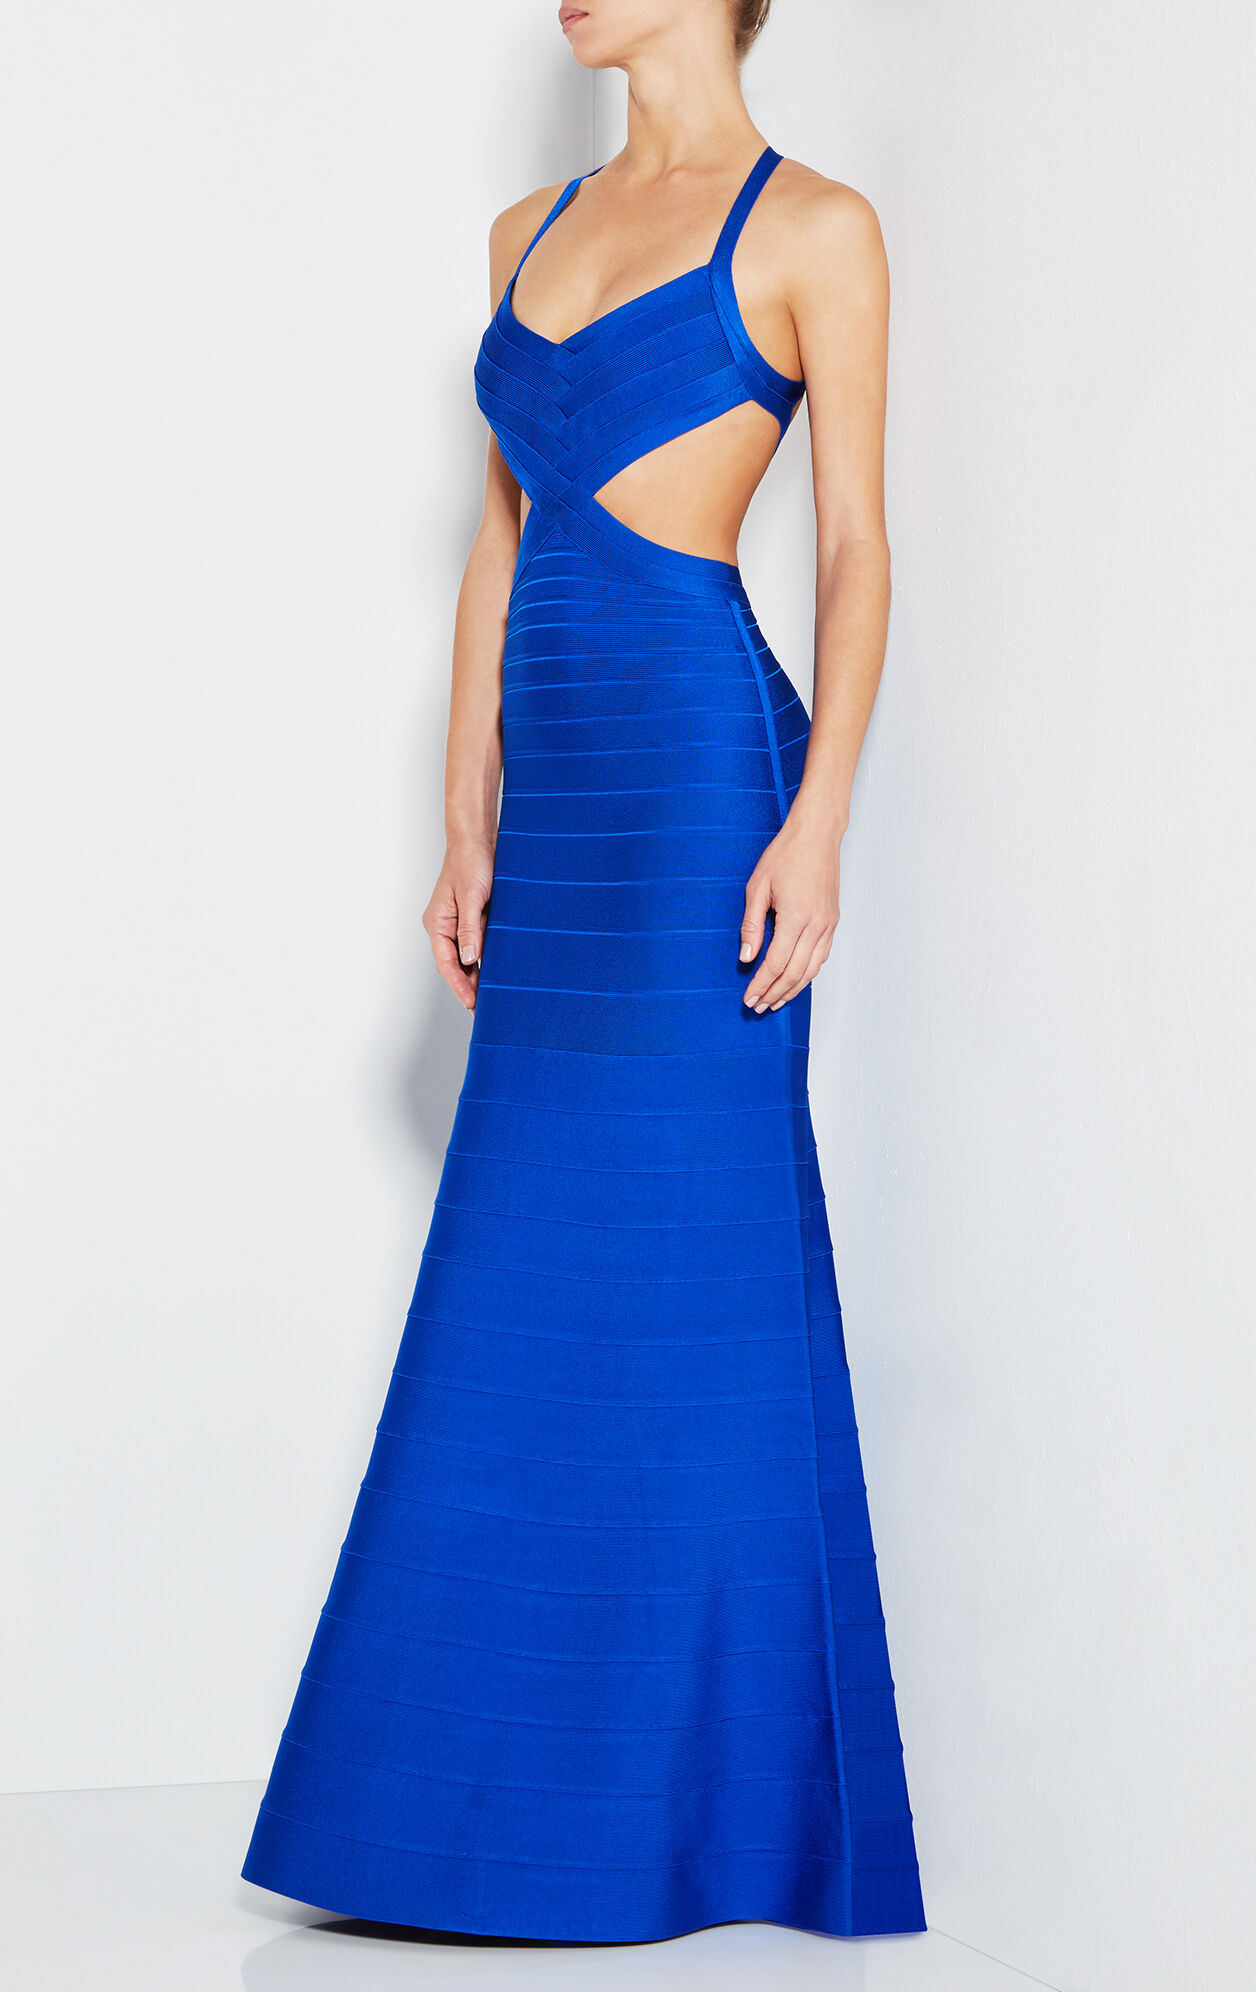 Marcella Cutout Bandage Gown